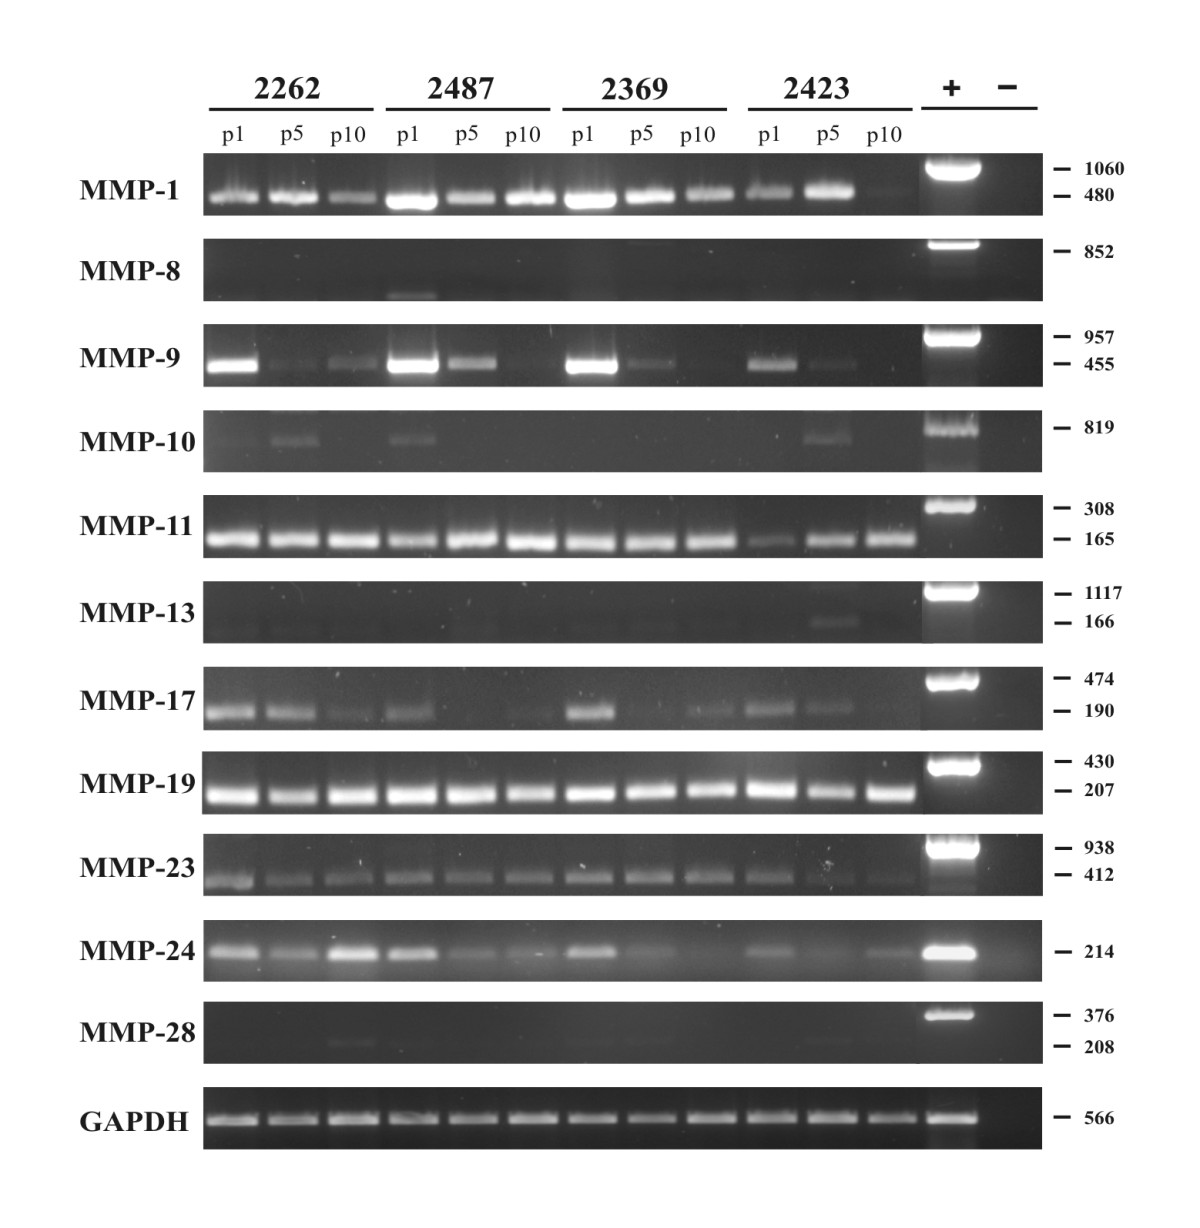 https://static-content.springer.com/image/art%3A10.1186%2F1756-0500-3-293/MediaObjects/13104_2010_Article_697_Fig3_HTML.jpg